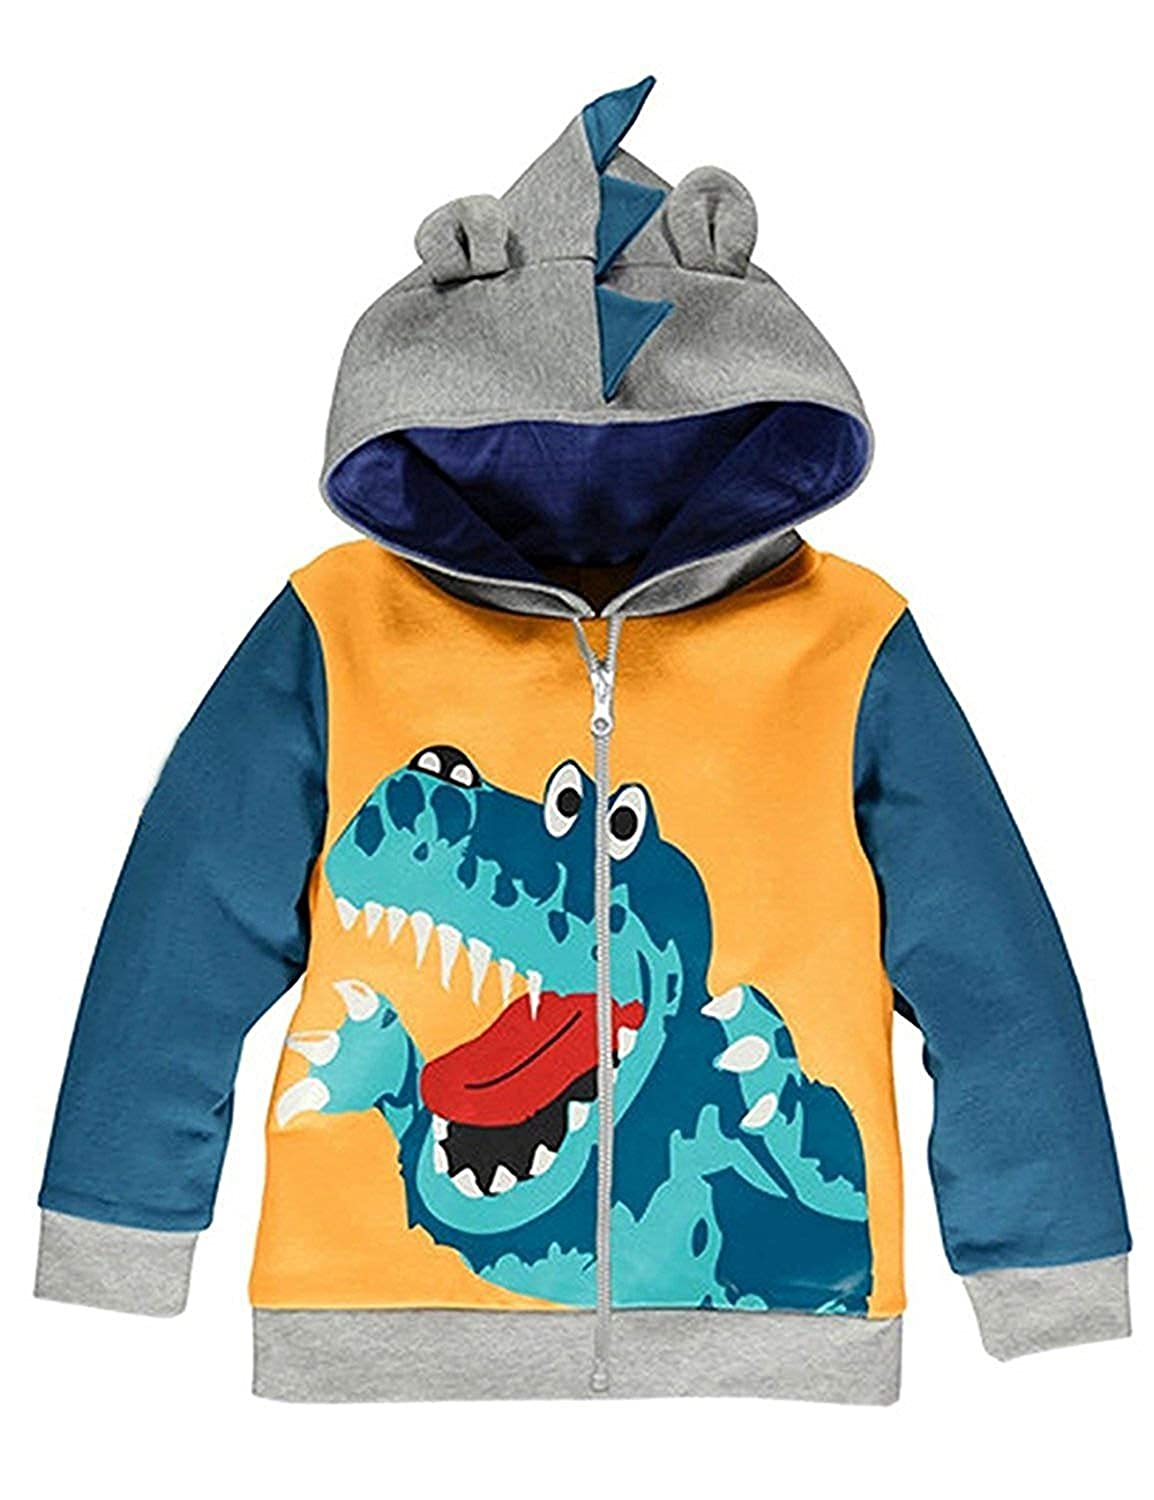 Amazon.com: Tkiames Boys Toddler Cartoon Dinosaur Hoodie Jacket Cool Long Sleeve Zipper Hooded Sport Sweatshirt for Kids: Clothing